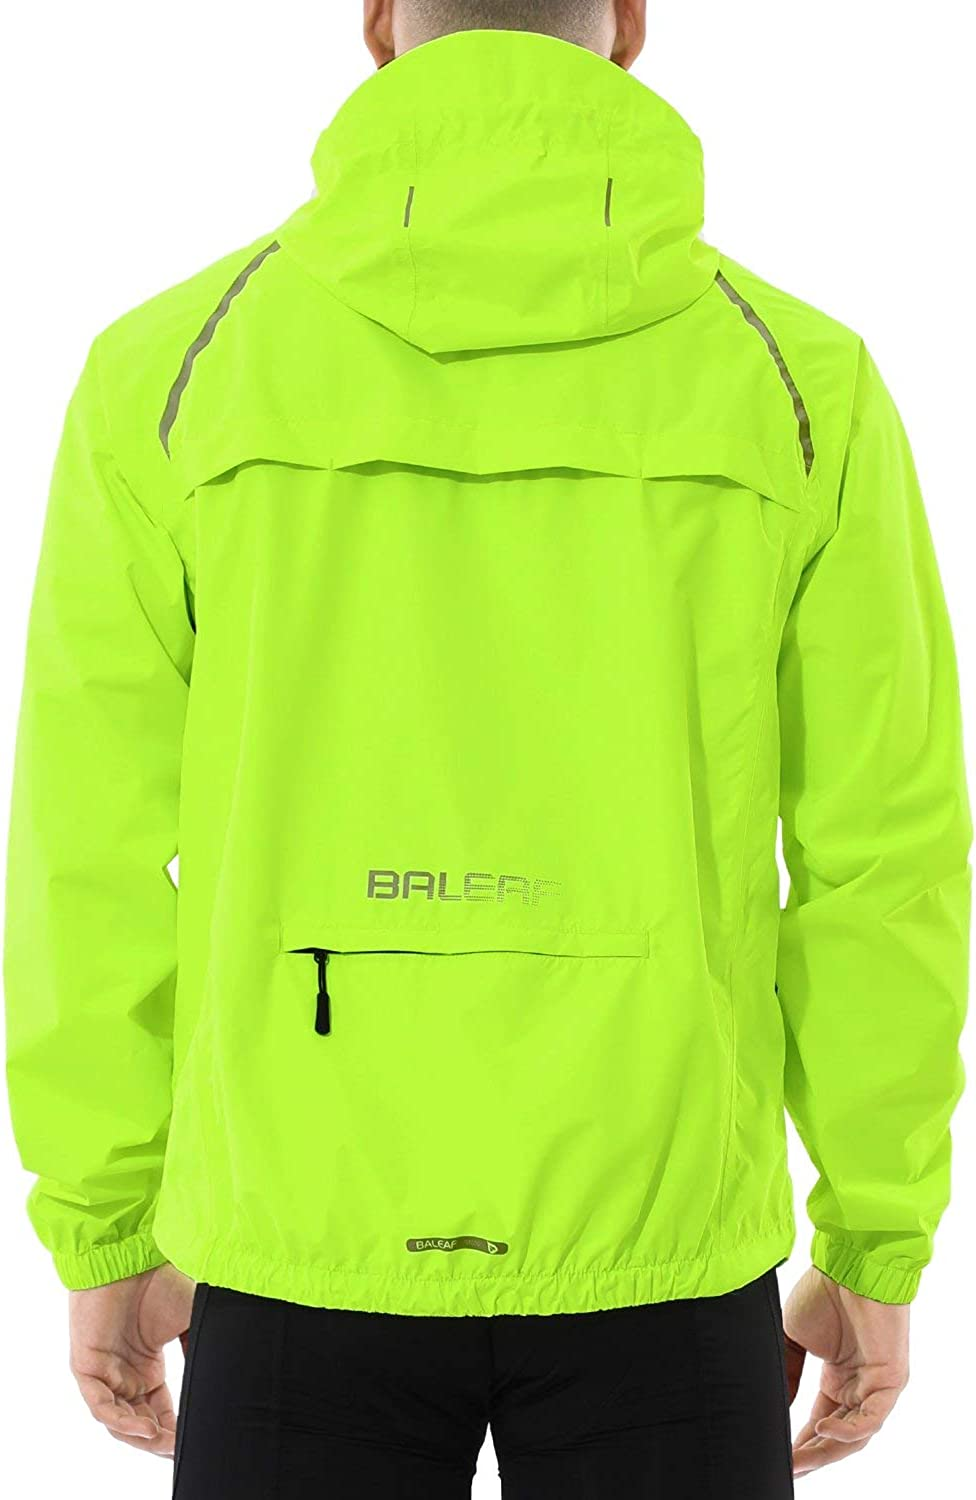 BALEAF Men's Cycling Running Jacket Waterproof Reflective Lightweight Windbreaker Windproof Bike Jacket Hooded Fluorescent Yellow Size M: Clothing